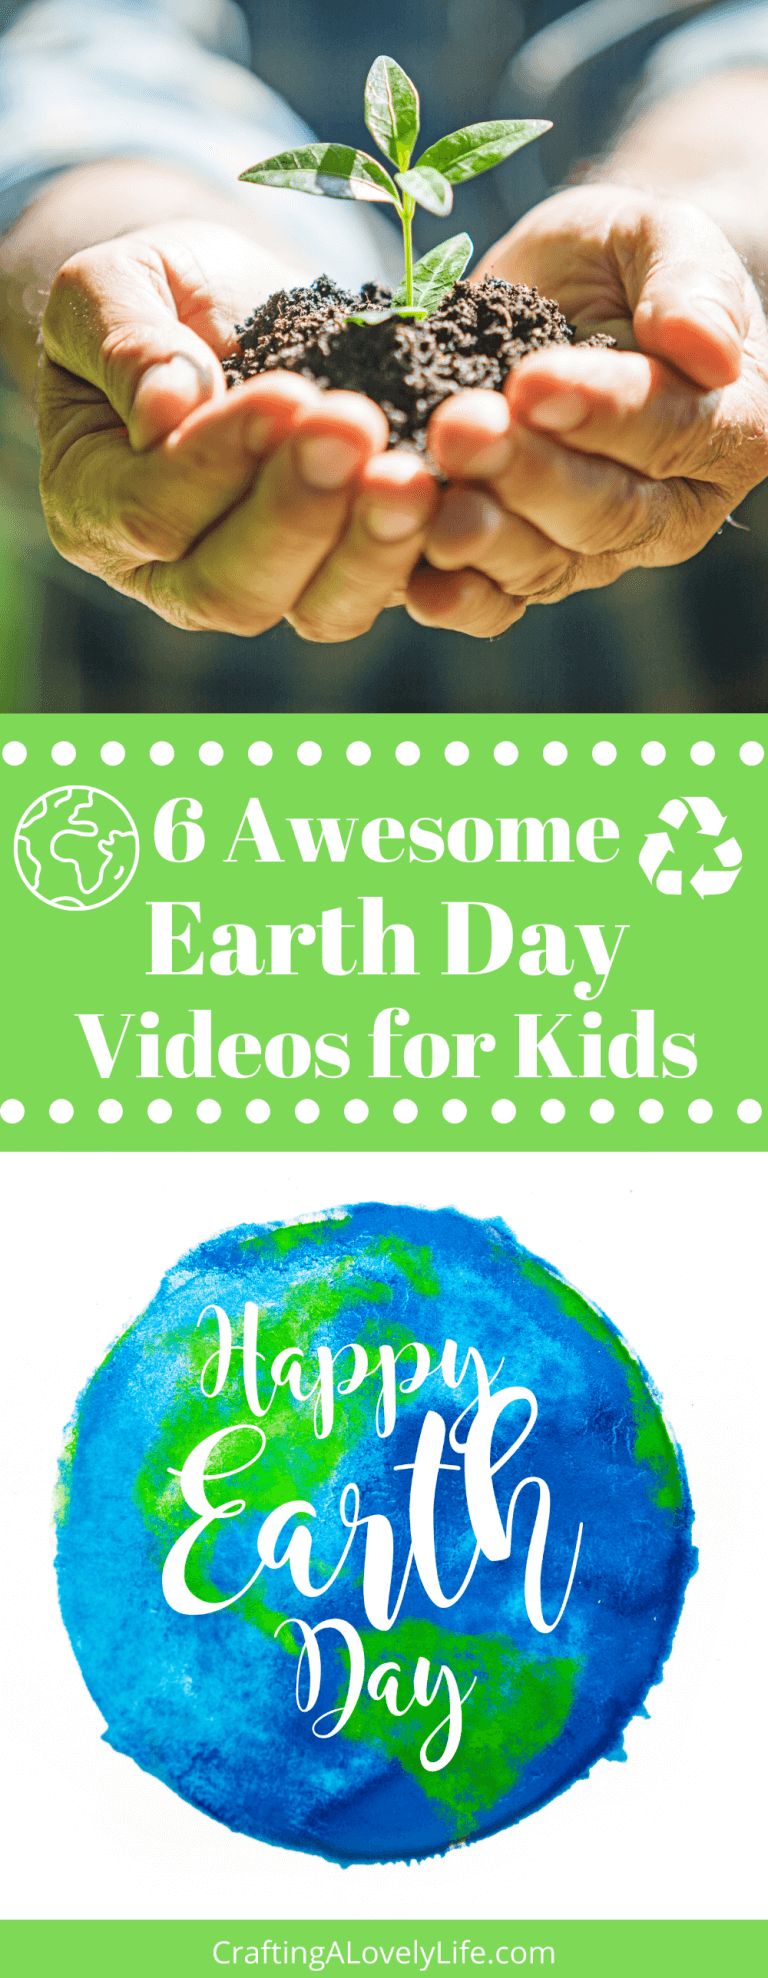 6 Awesome Earth Day Videos for Kids